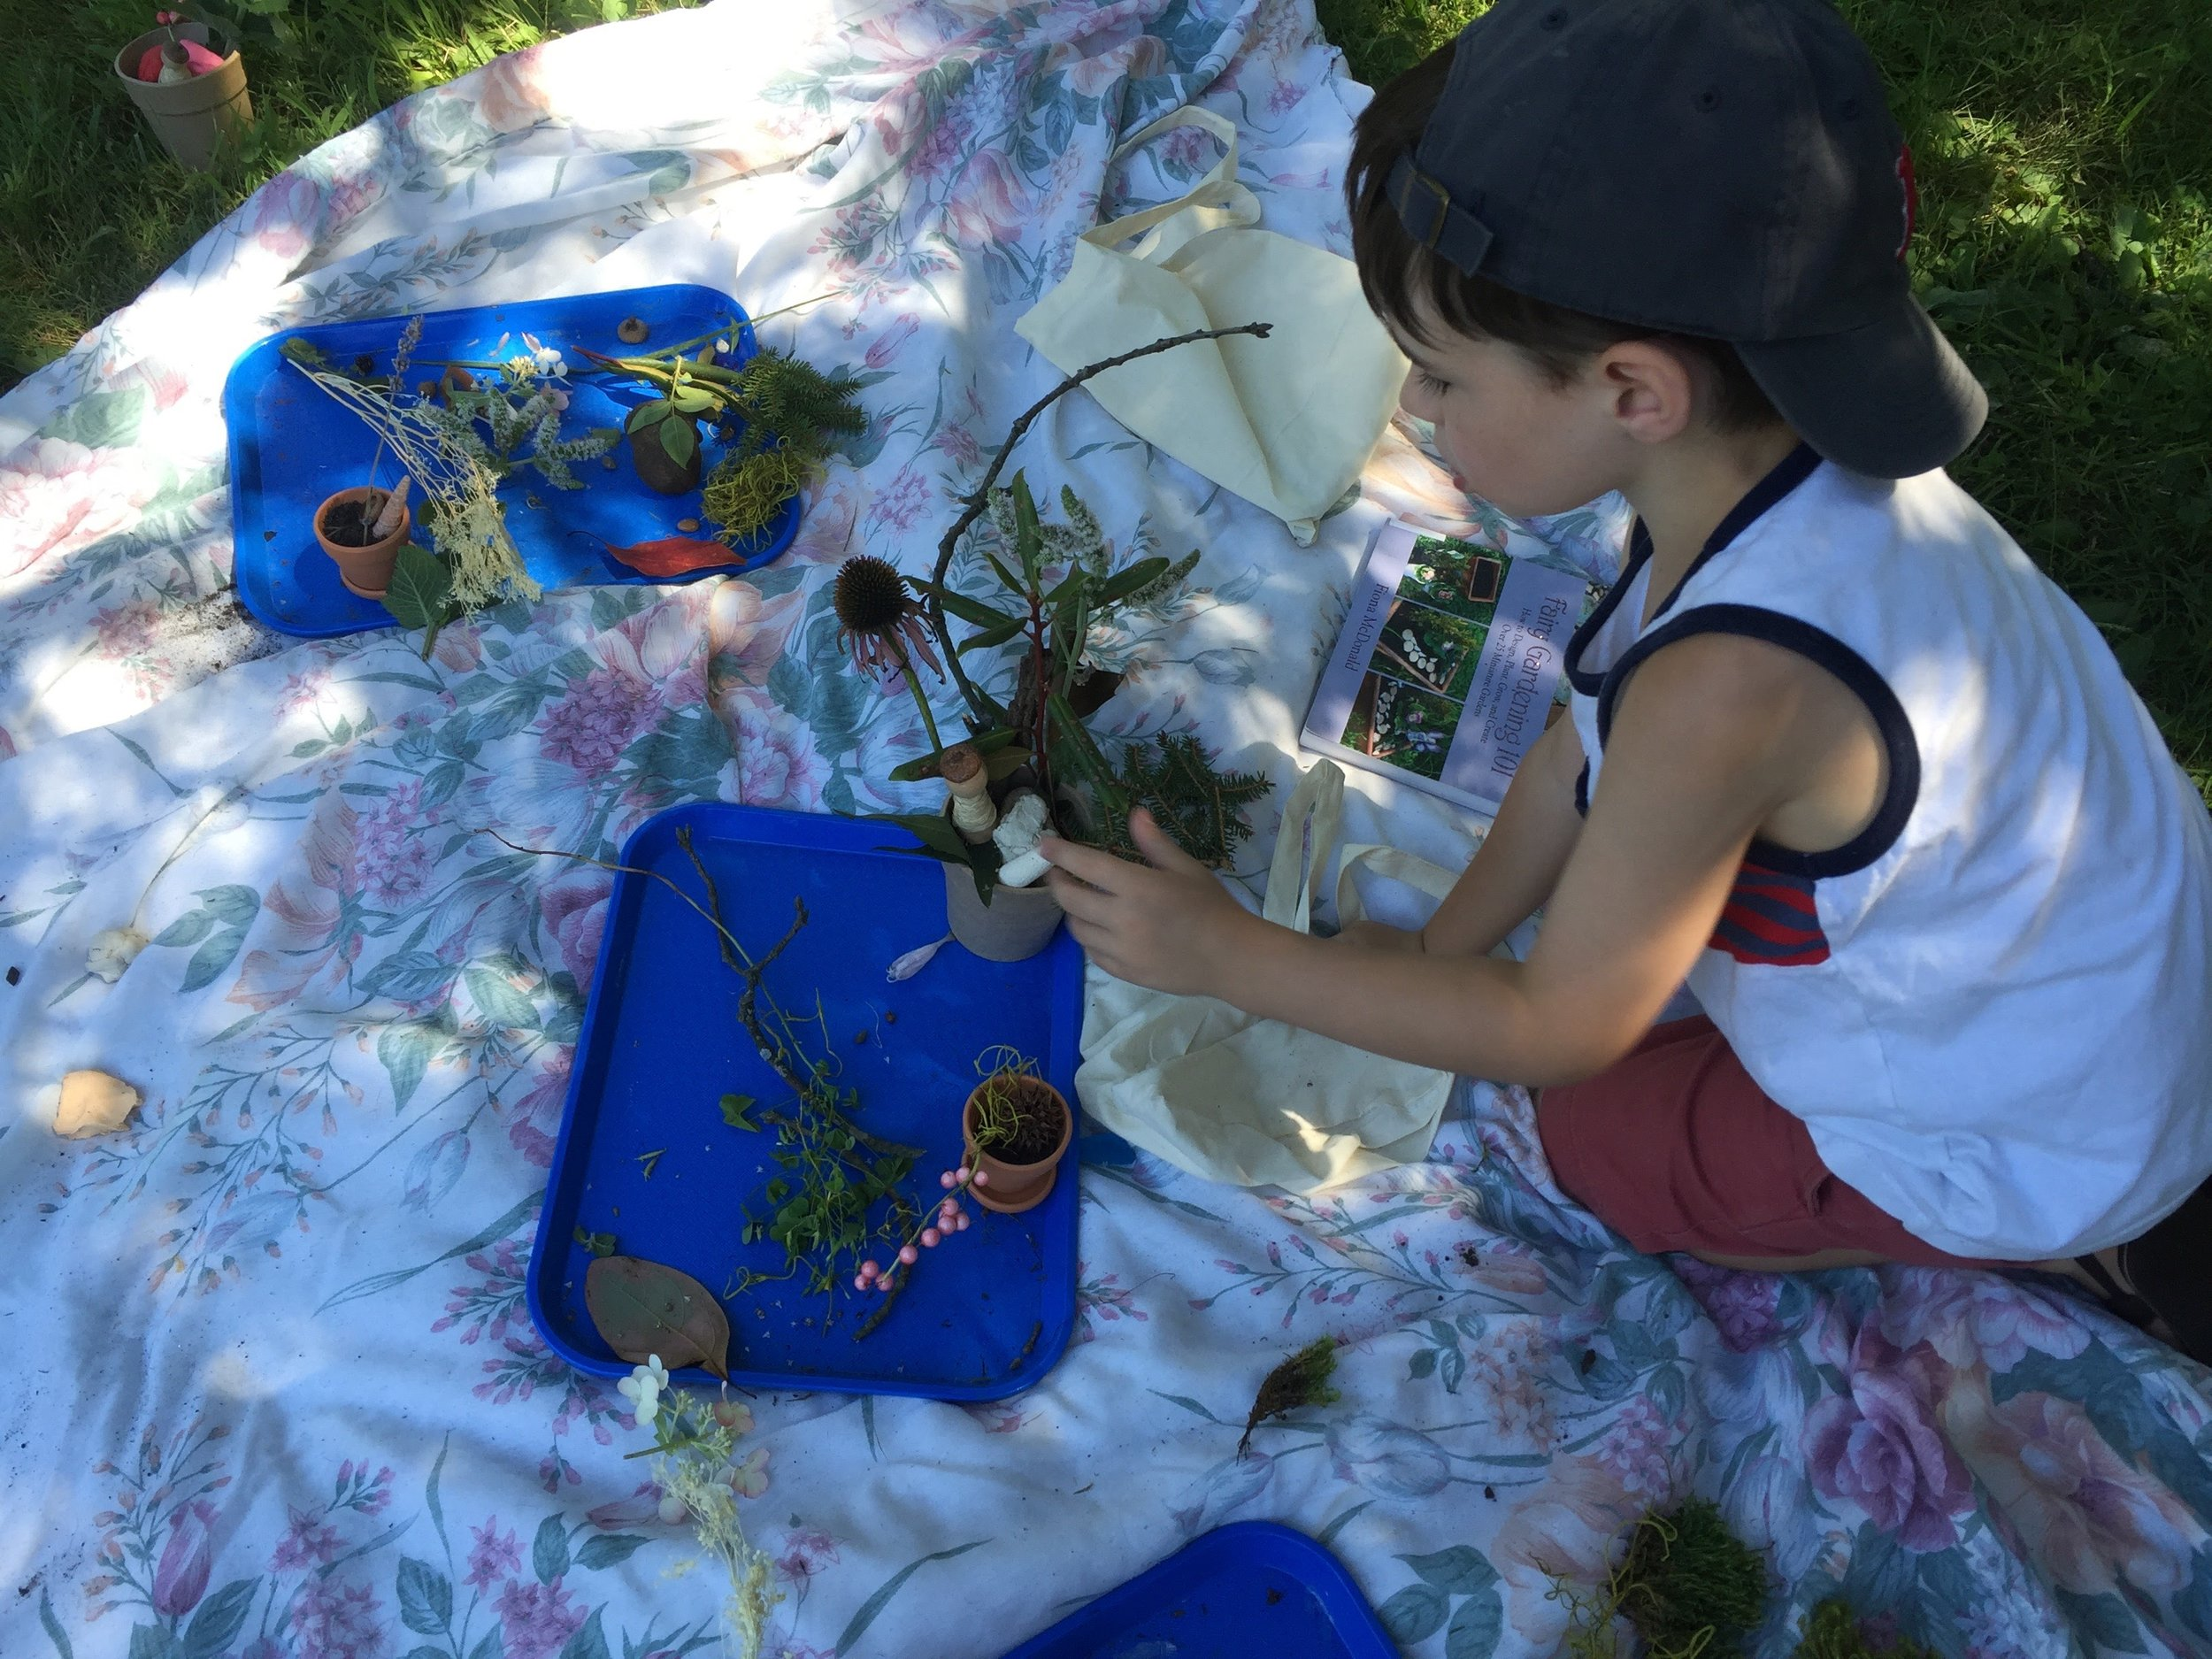 Making fairy gardens